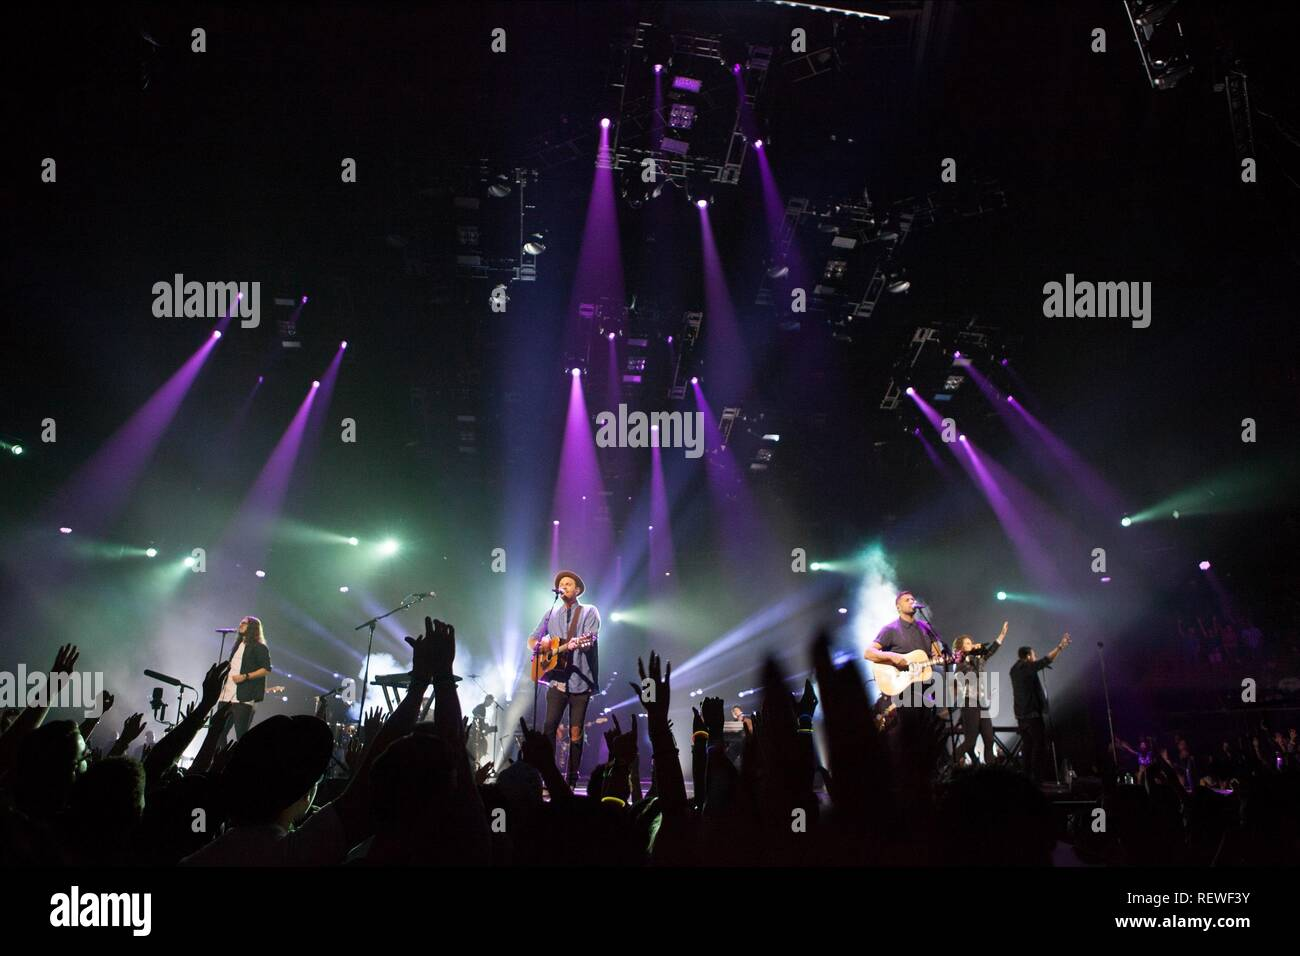 Hillsong Stock Photos & Hillsong Stock Images - Alamy